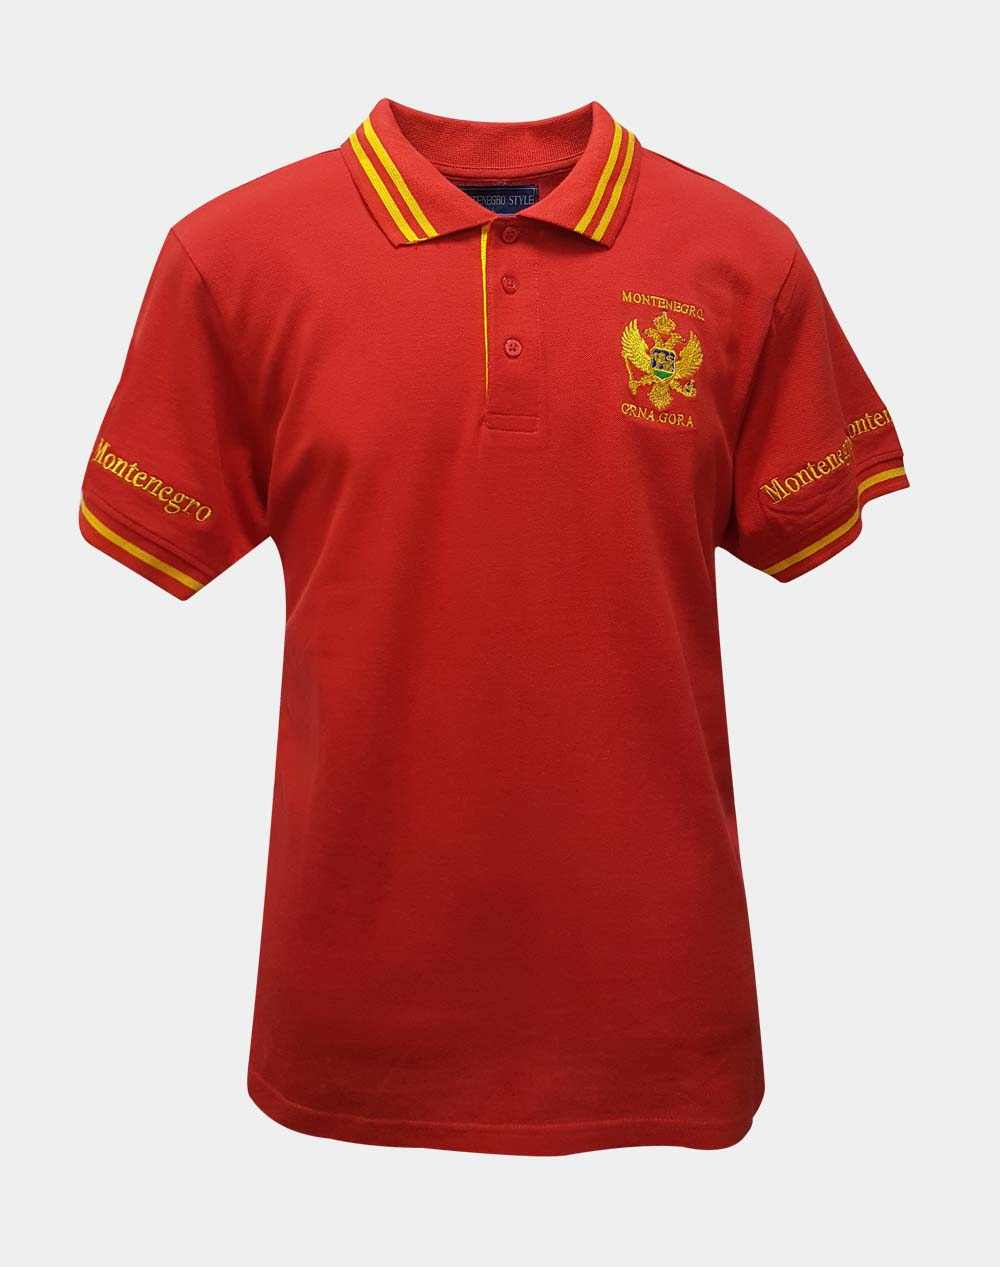 Polo Shirt Manufacturer, Polo shirts Factory in Bangladesh, Manufacturer, Supplier, Exporter